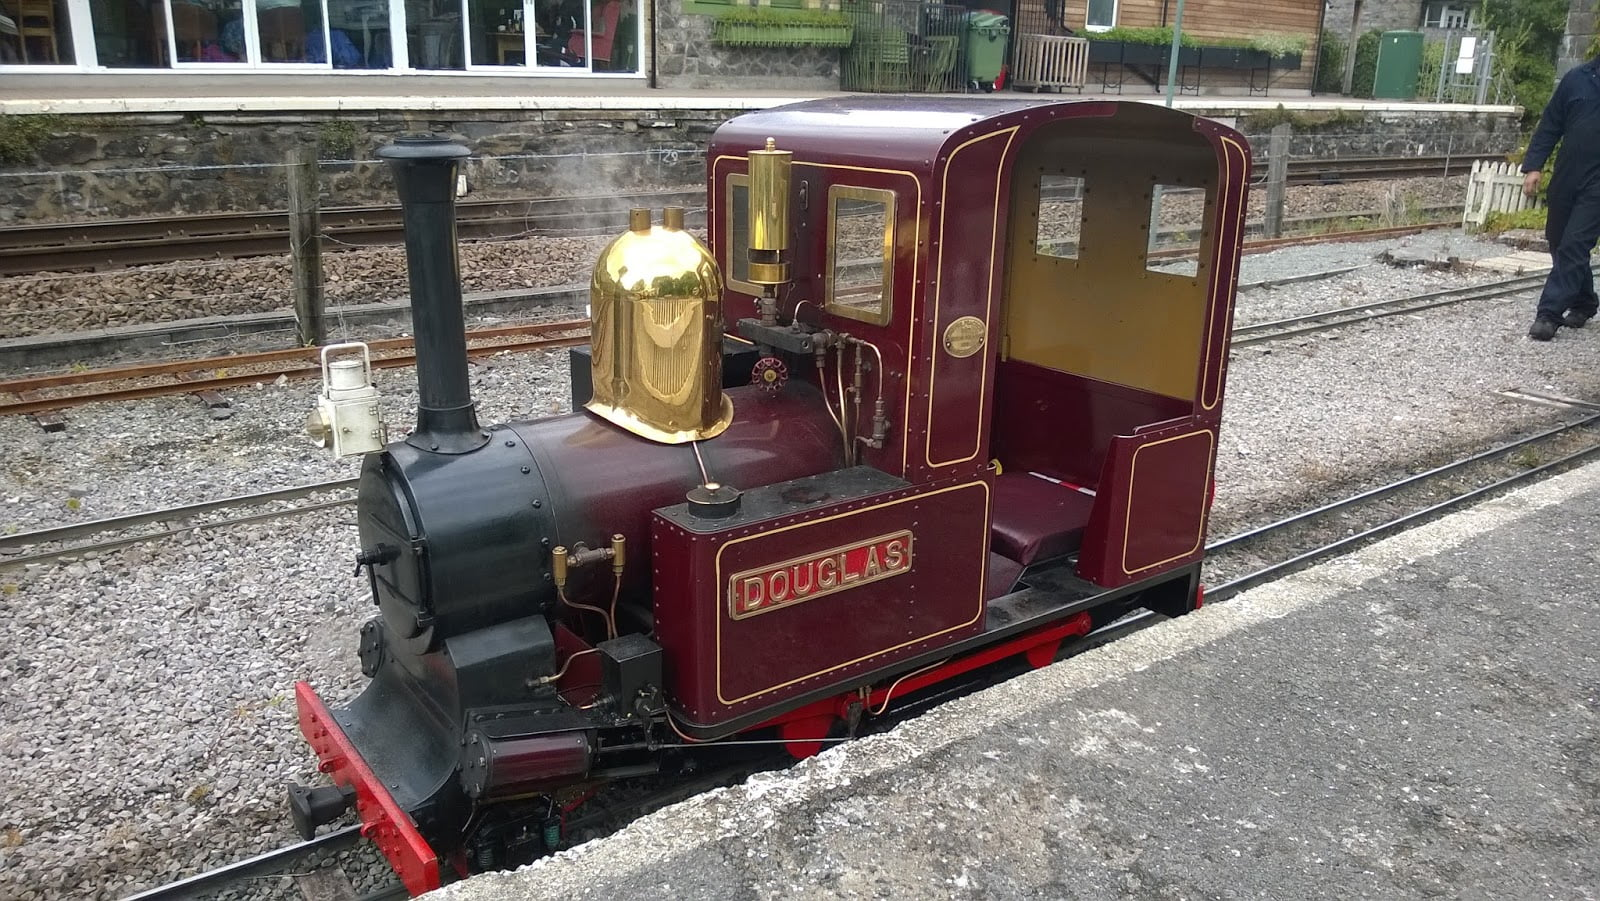 Douglas at the station